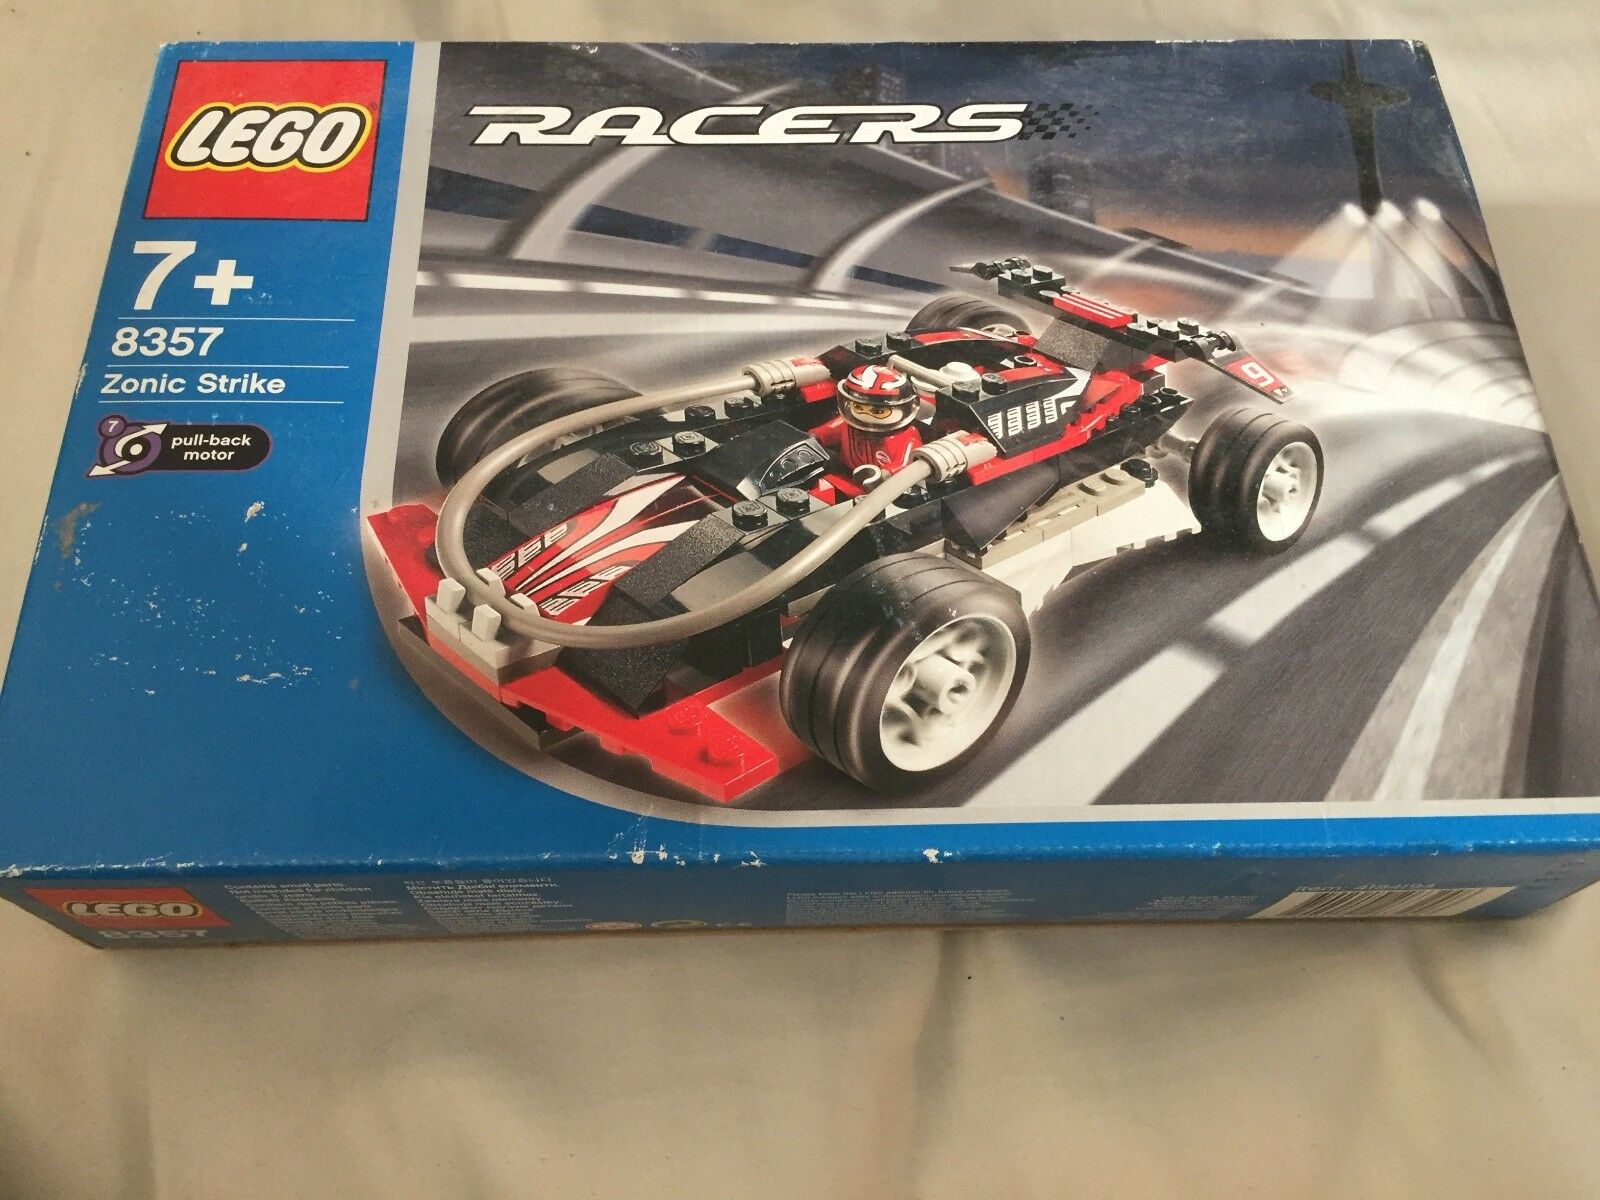 LEGO 8357 - Racers  Drome Racers   Zonic Strike - 2003 new sealed box